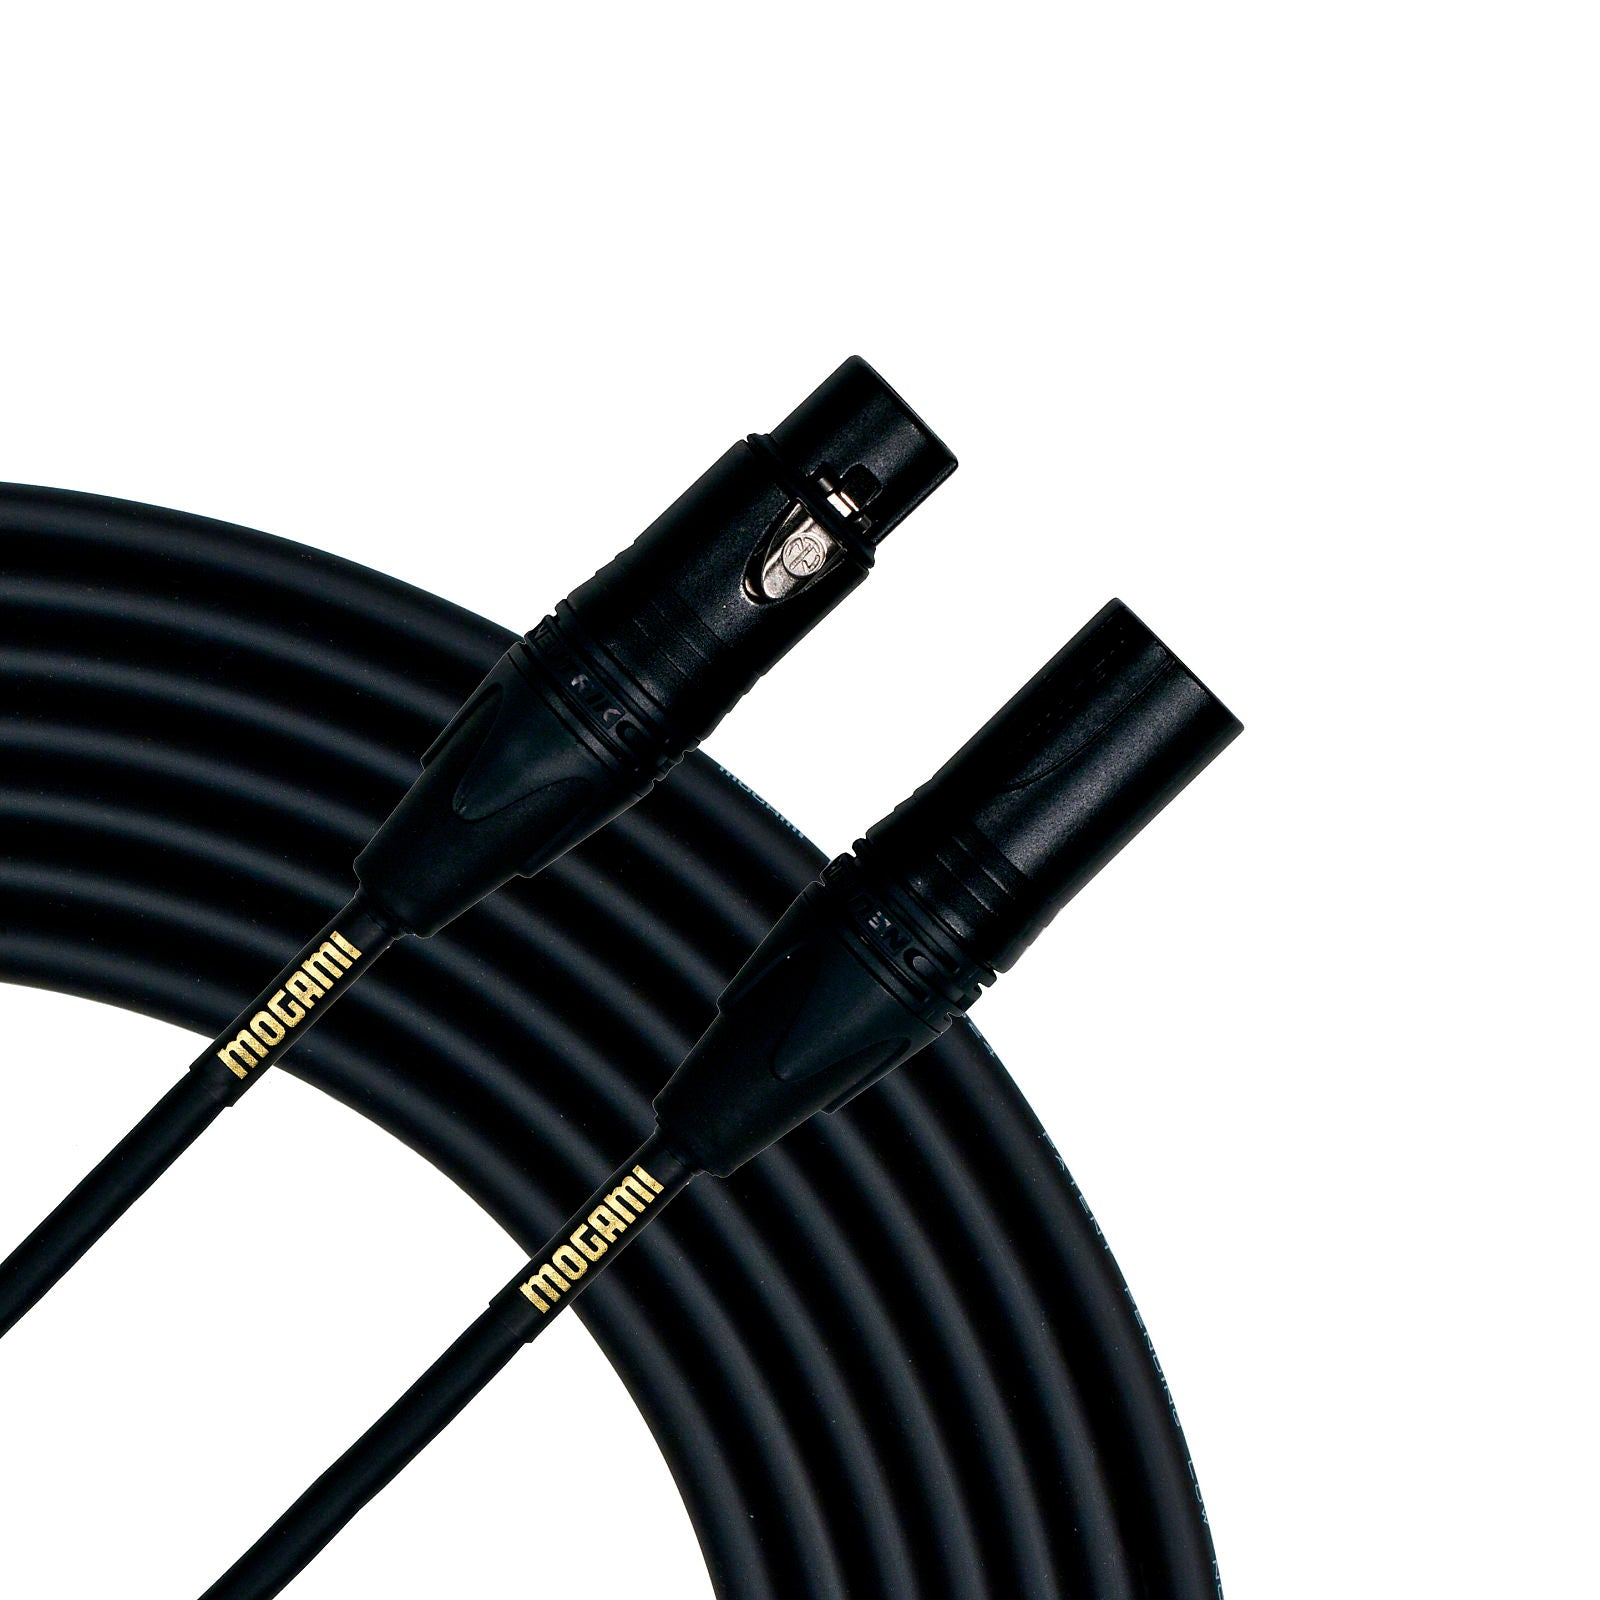 Mogami Gold Studio Microphone Cable, 6 Foot